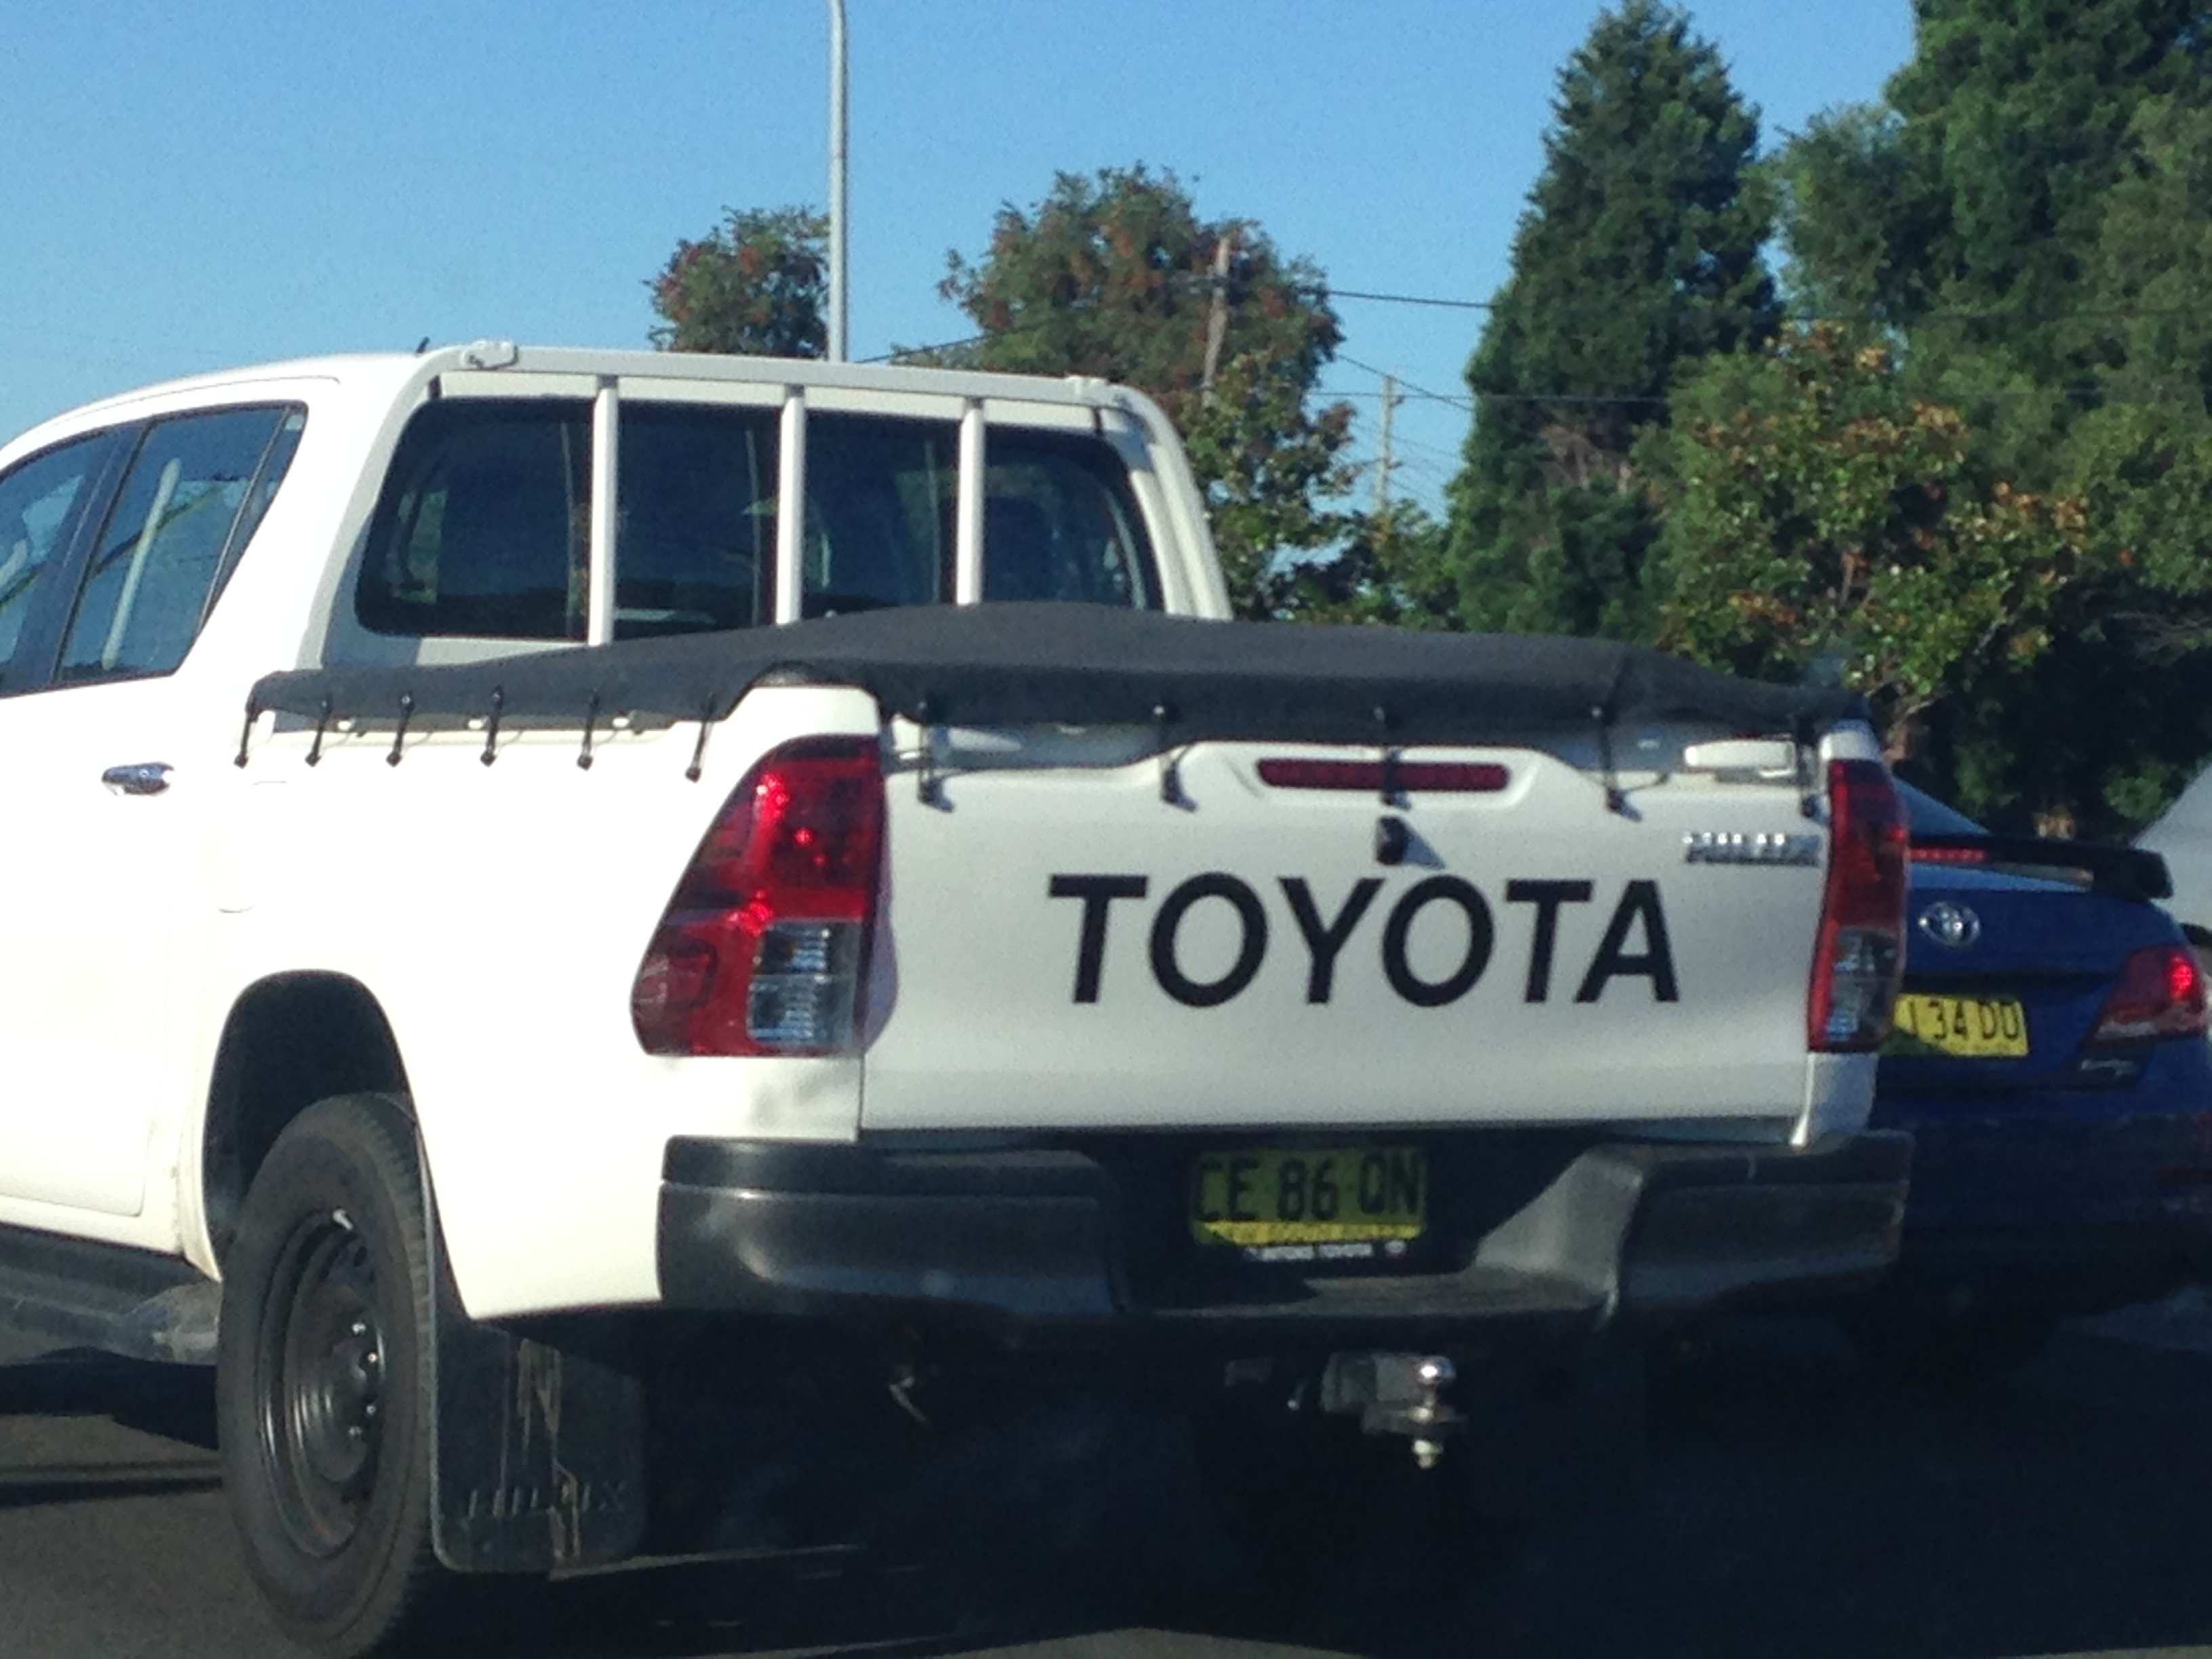 new toyota with bed cover.JPG